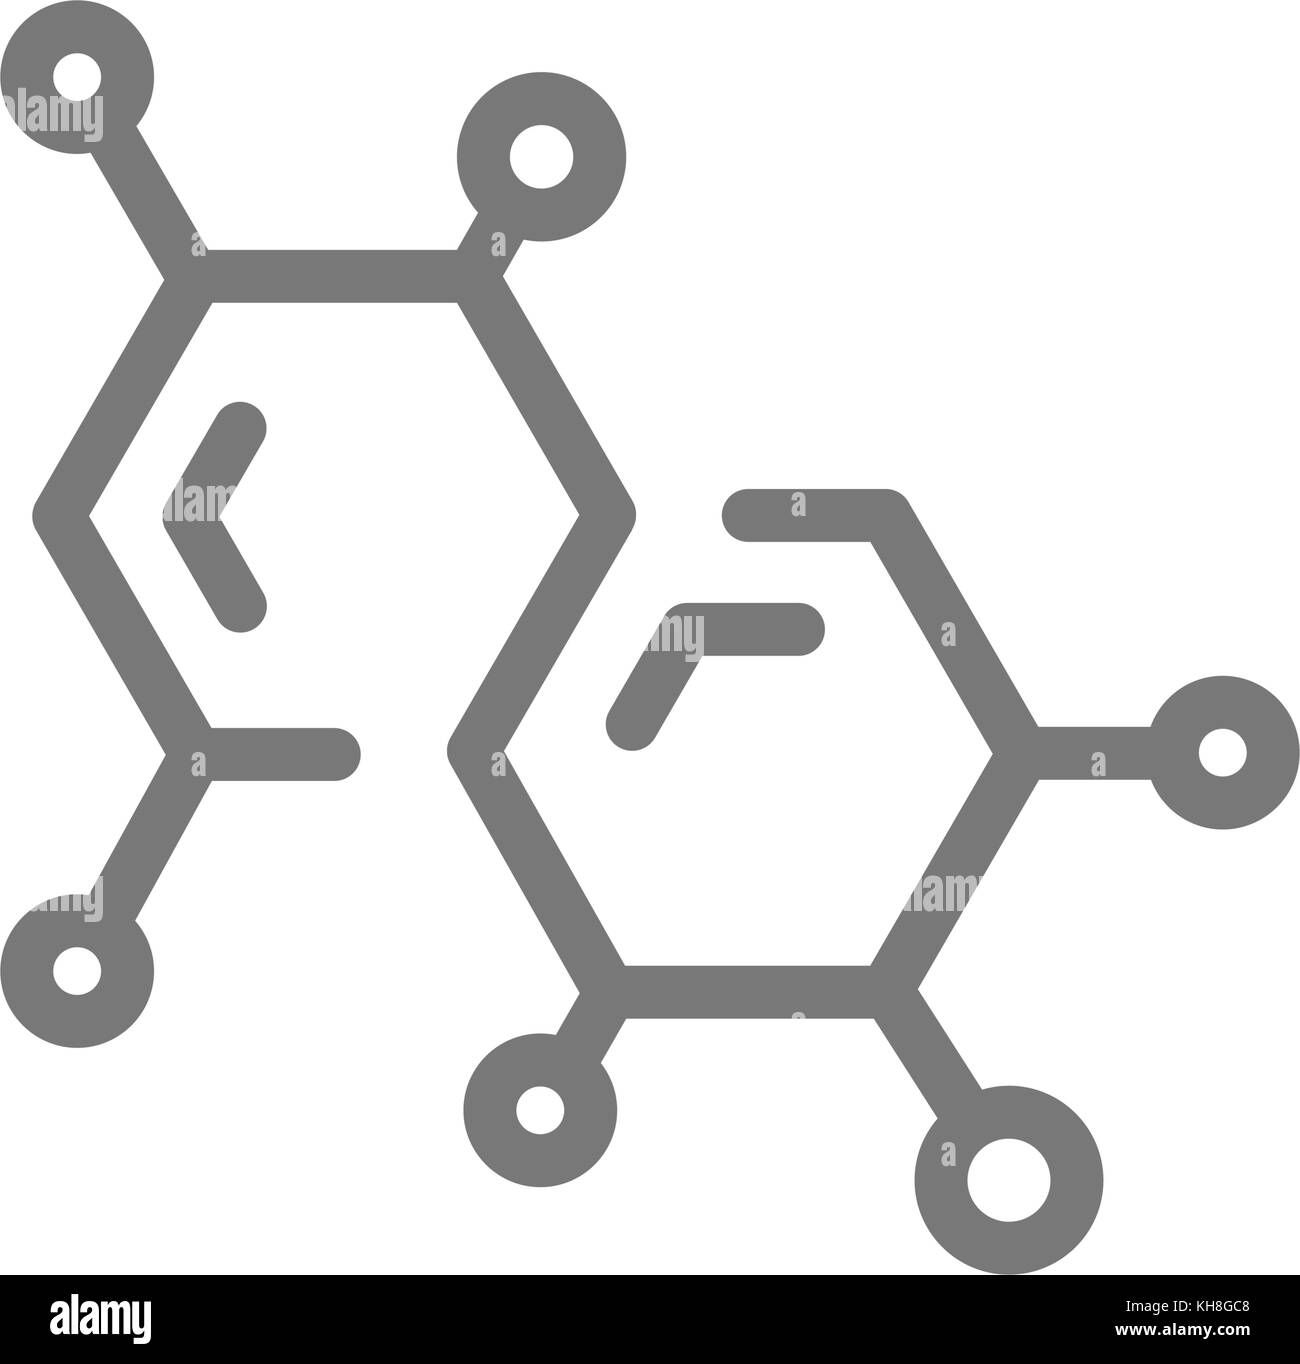 Simple chemistry formula and molecule line icon. Symbol and sign vector illustration design. Isolated on white background - Stock Vector